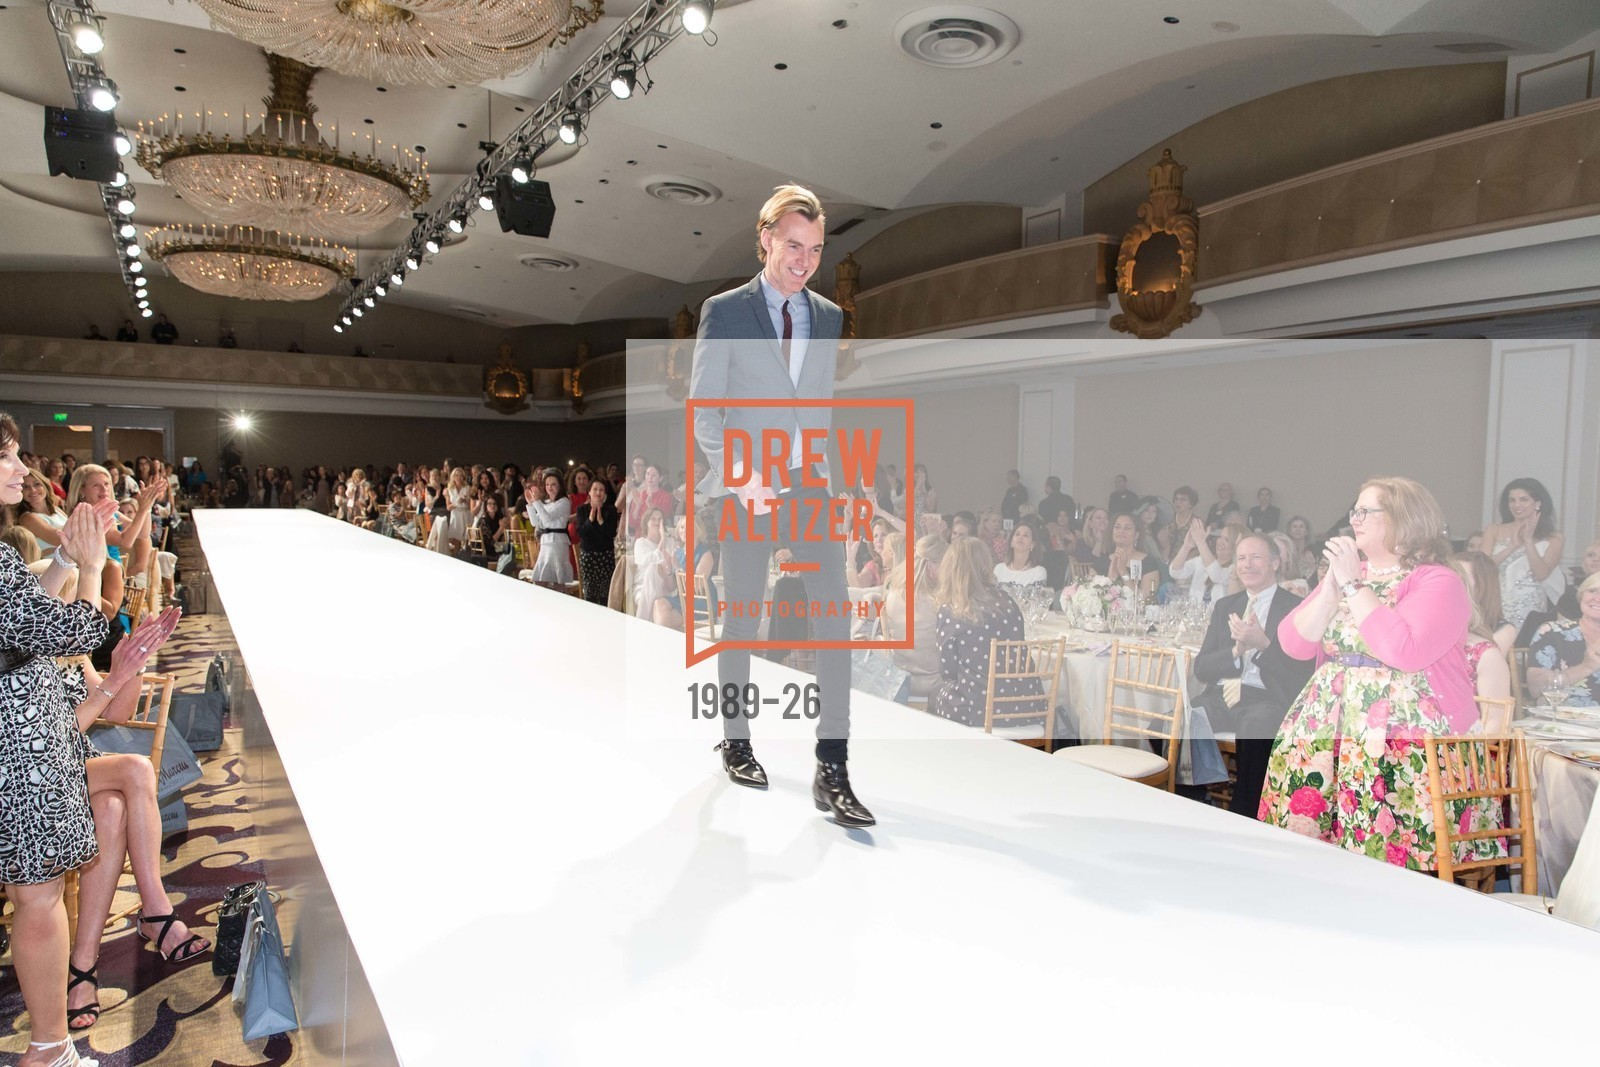 Top Picks, Neiman Marcus Presents the 2015 San Francisco Ballet Fashion Show, April 2nd, 2015, Photo,Drew Altizer, Drew Altizer Photography, full-service event agency, private events, San Francisco photographer, photographer California